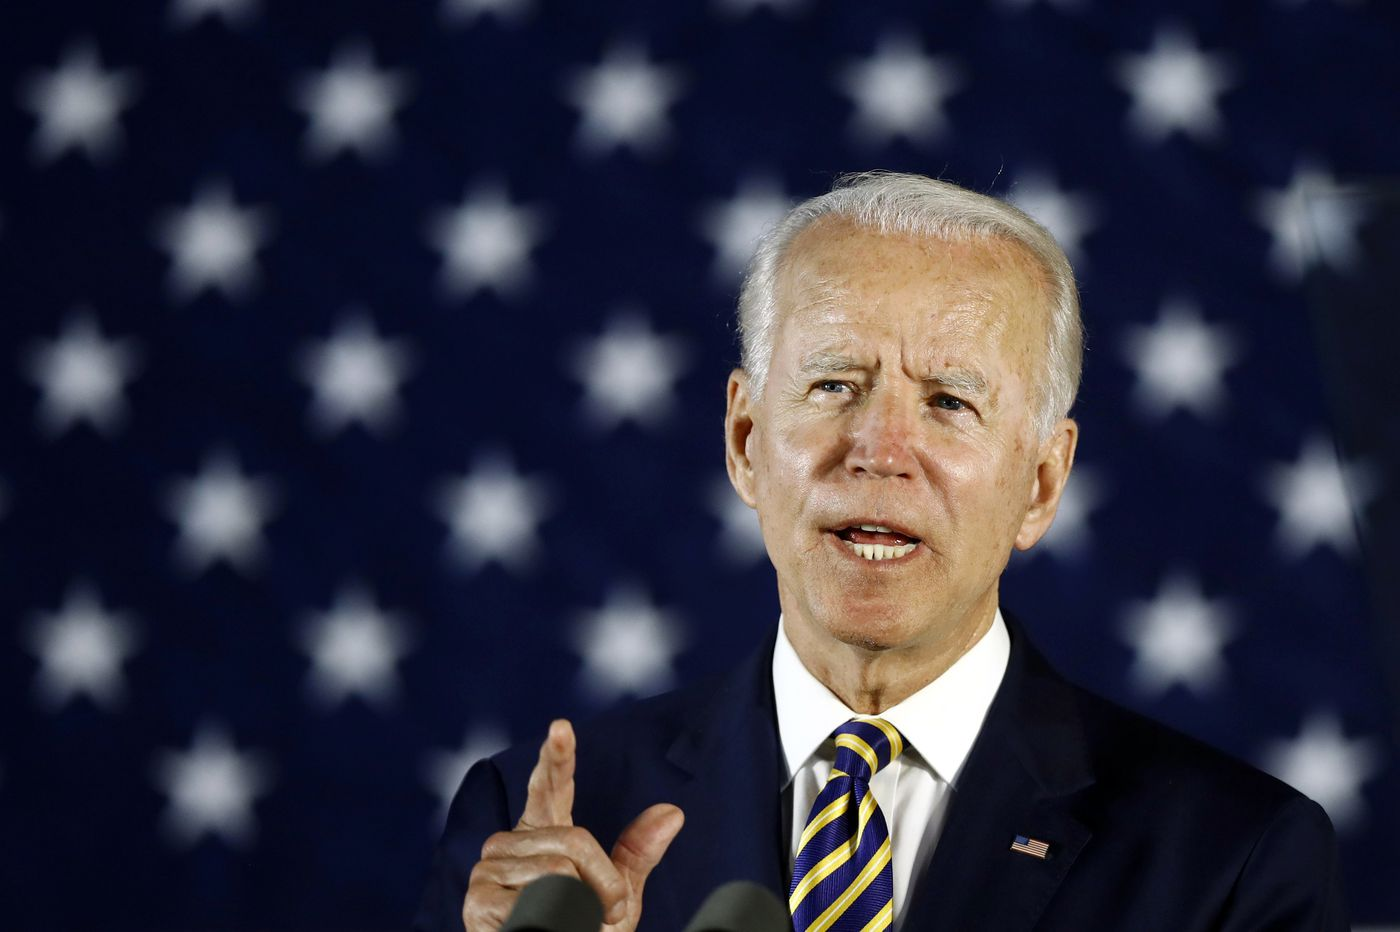 Who's Biden's best VP choice? Pa. insiders weigh in. | Morning Newsletter